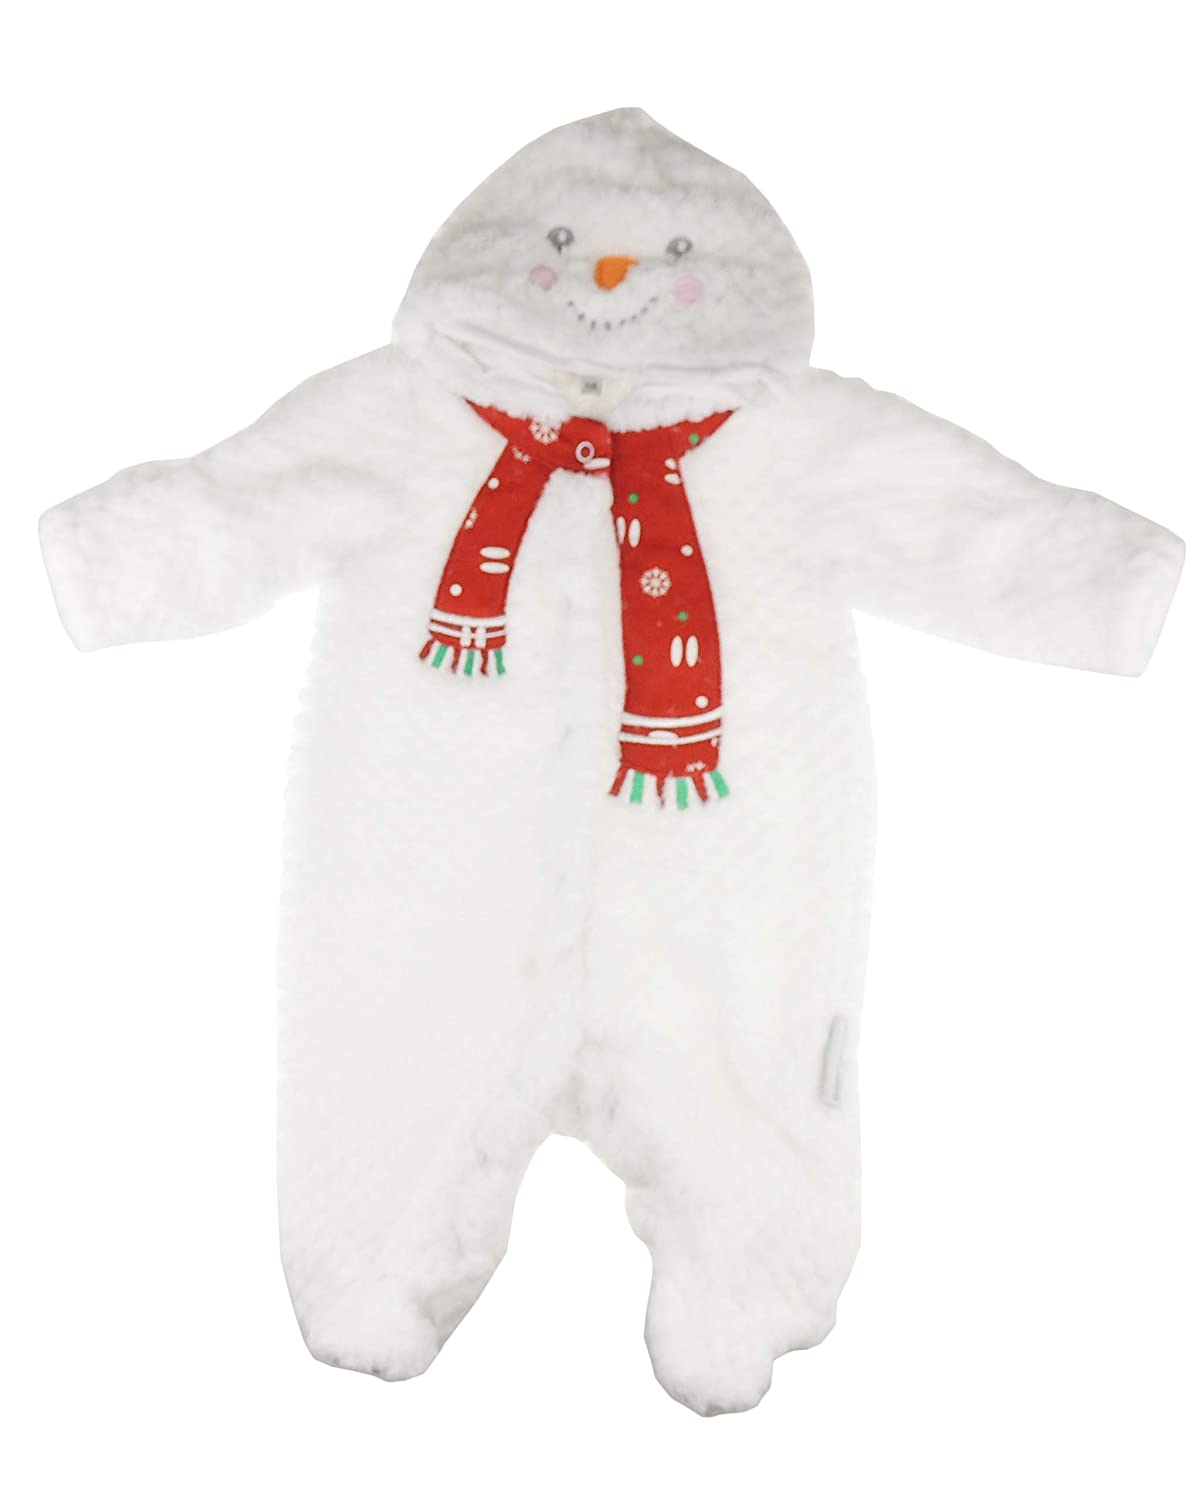 Baby Girls Boys Winter Super Soft Christmas Festive Plush Romper All in One Hoodie White Snowman